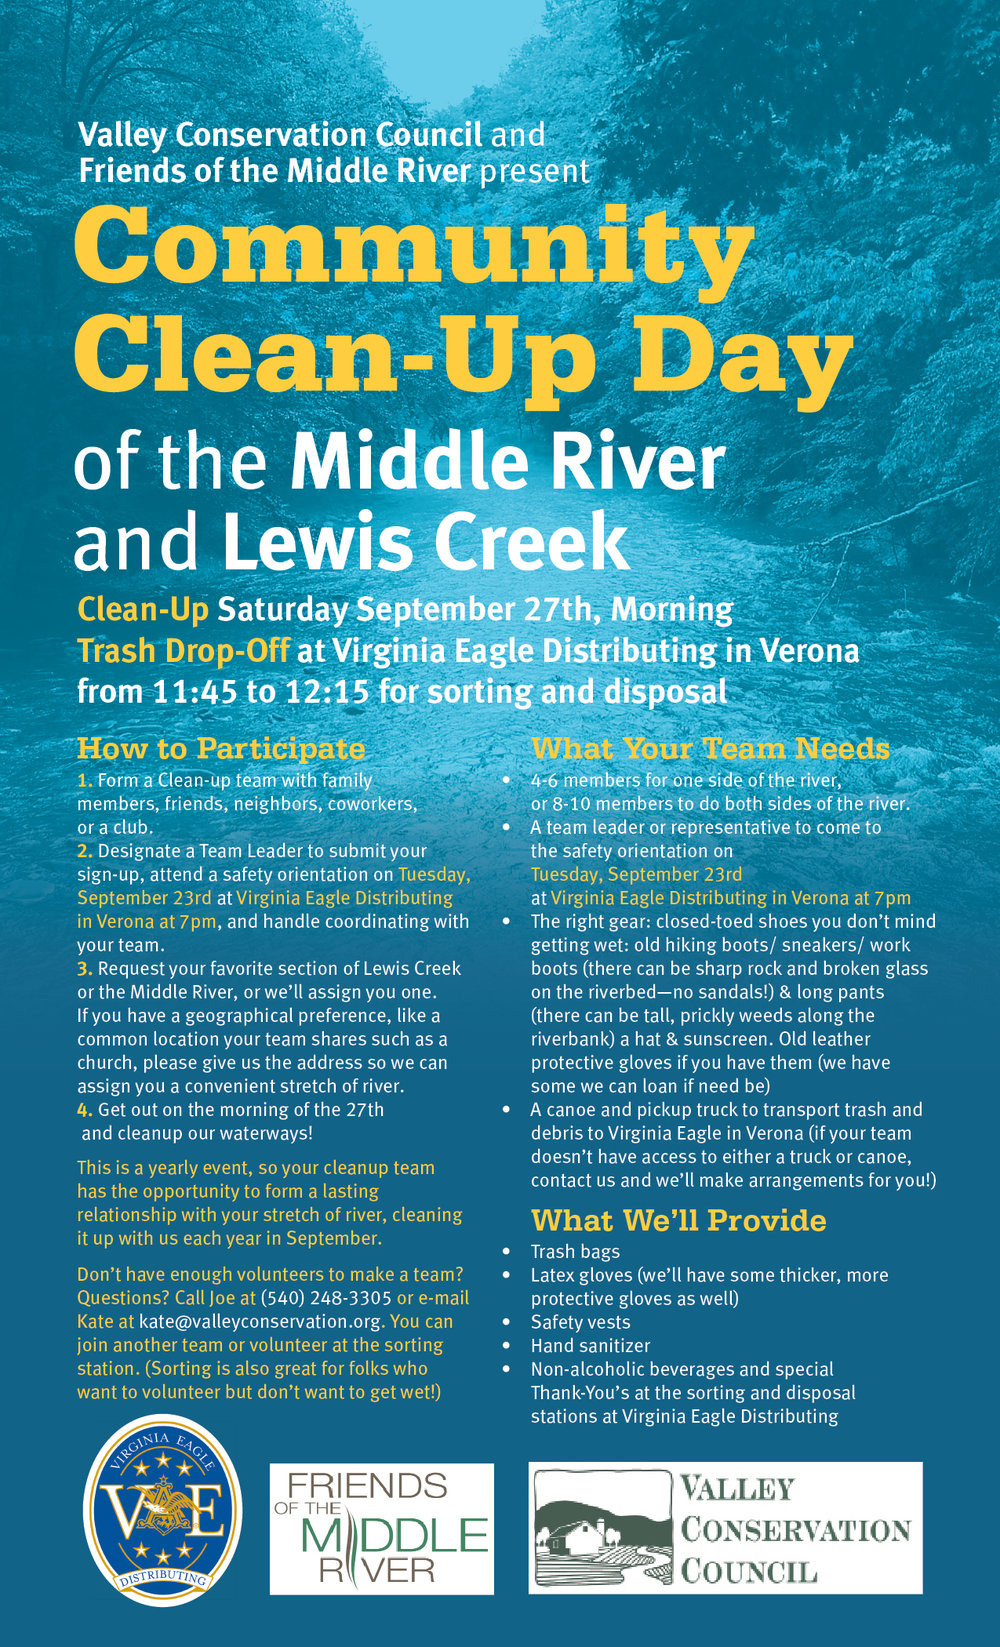 Valley Conservation Council Flyer